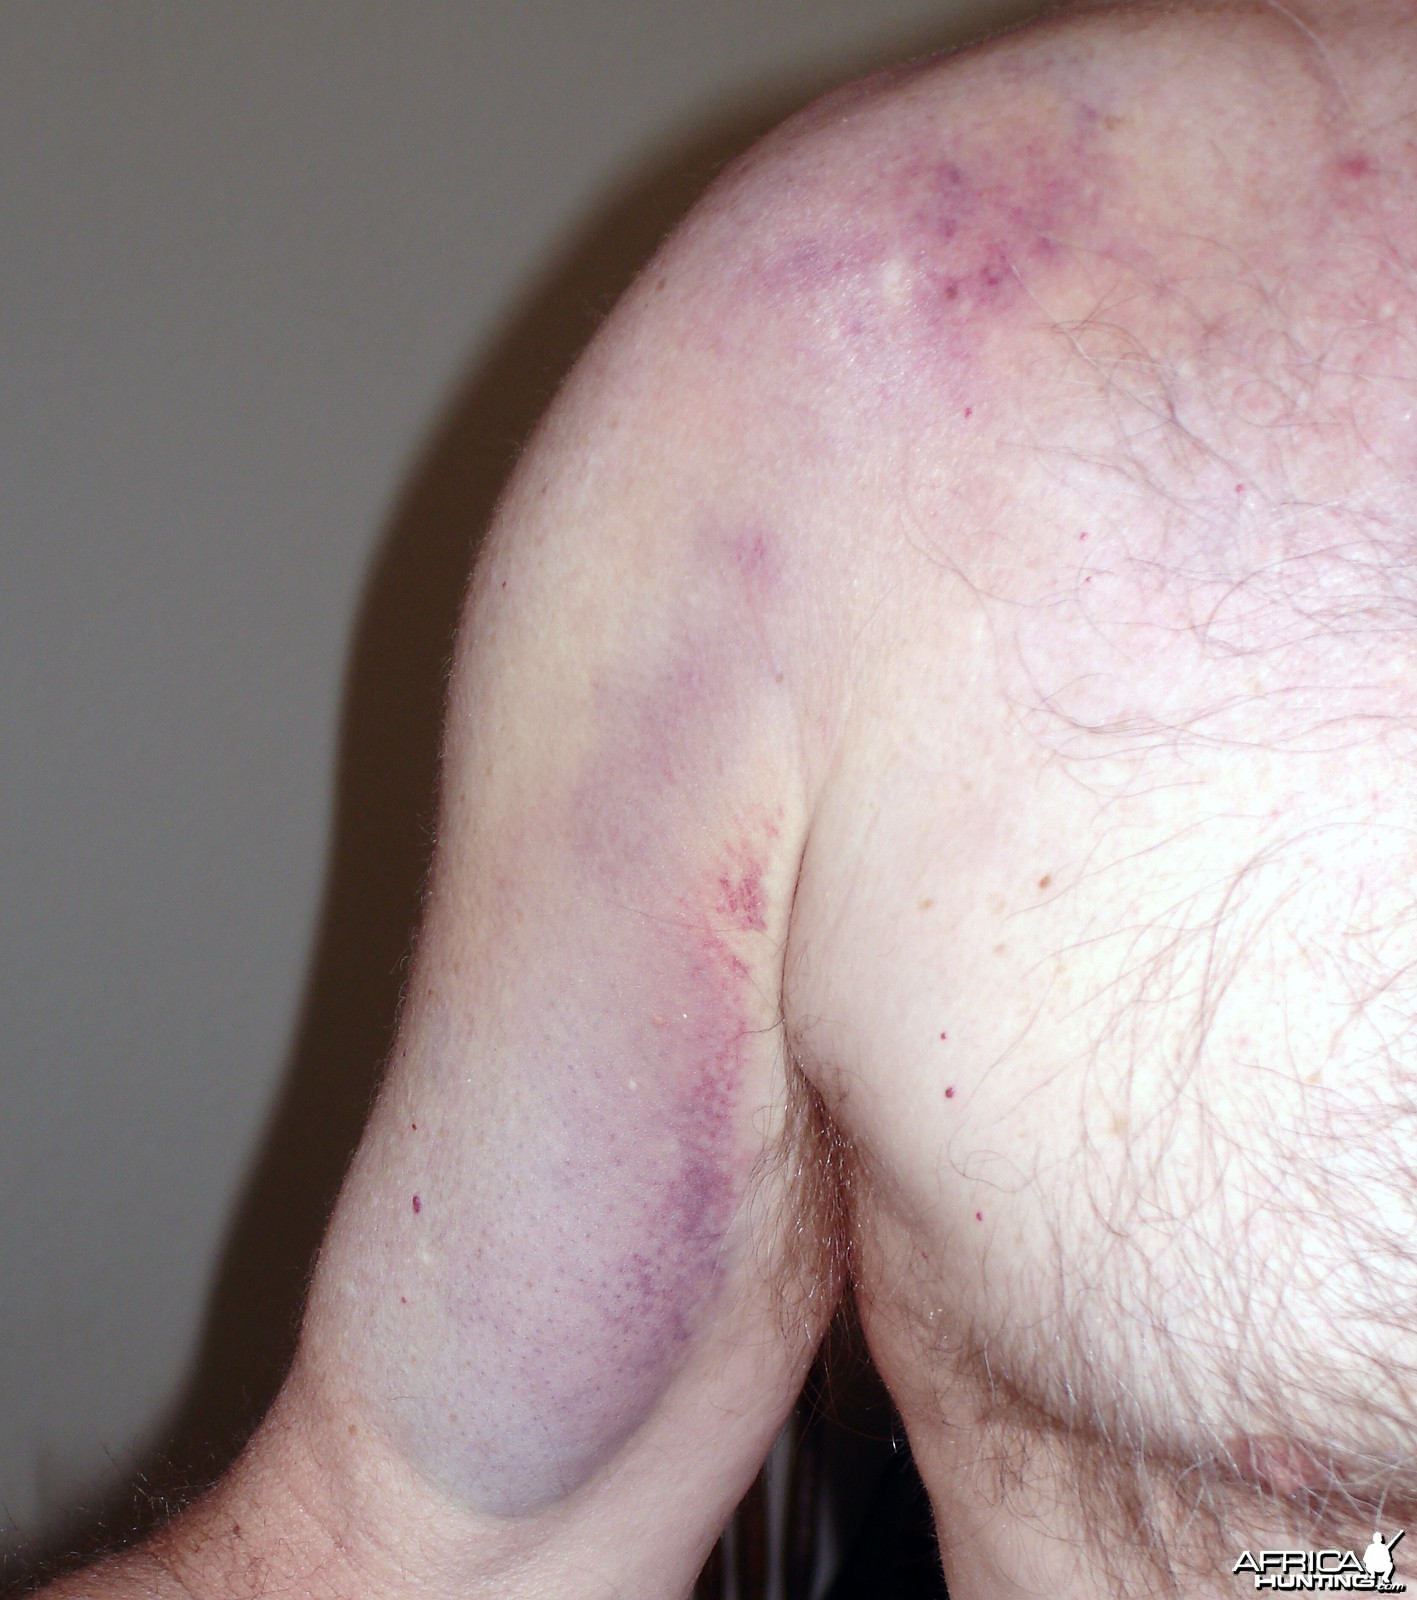 Shoulder bruise